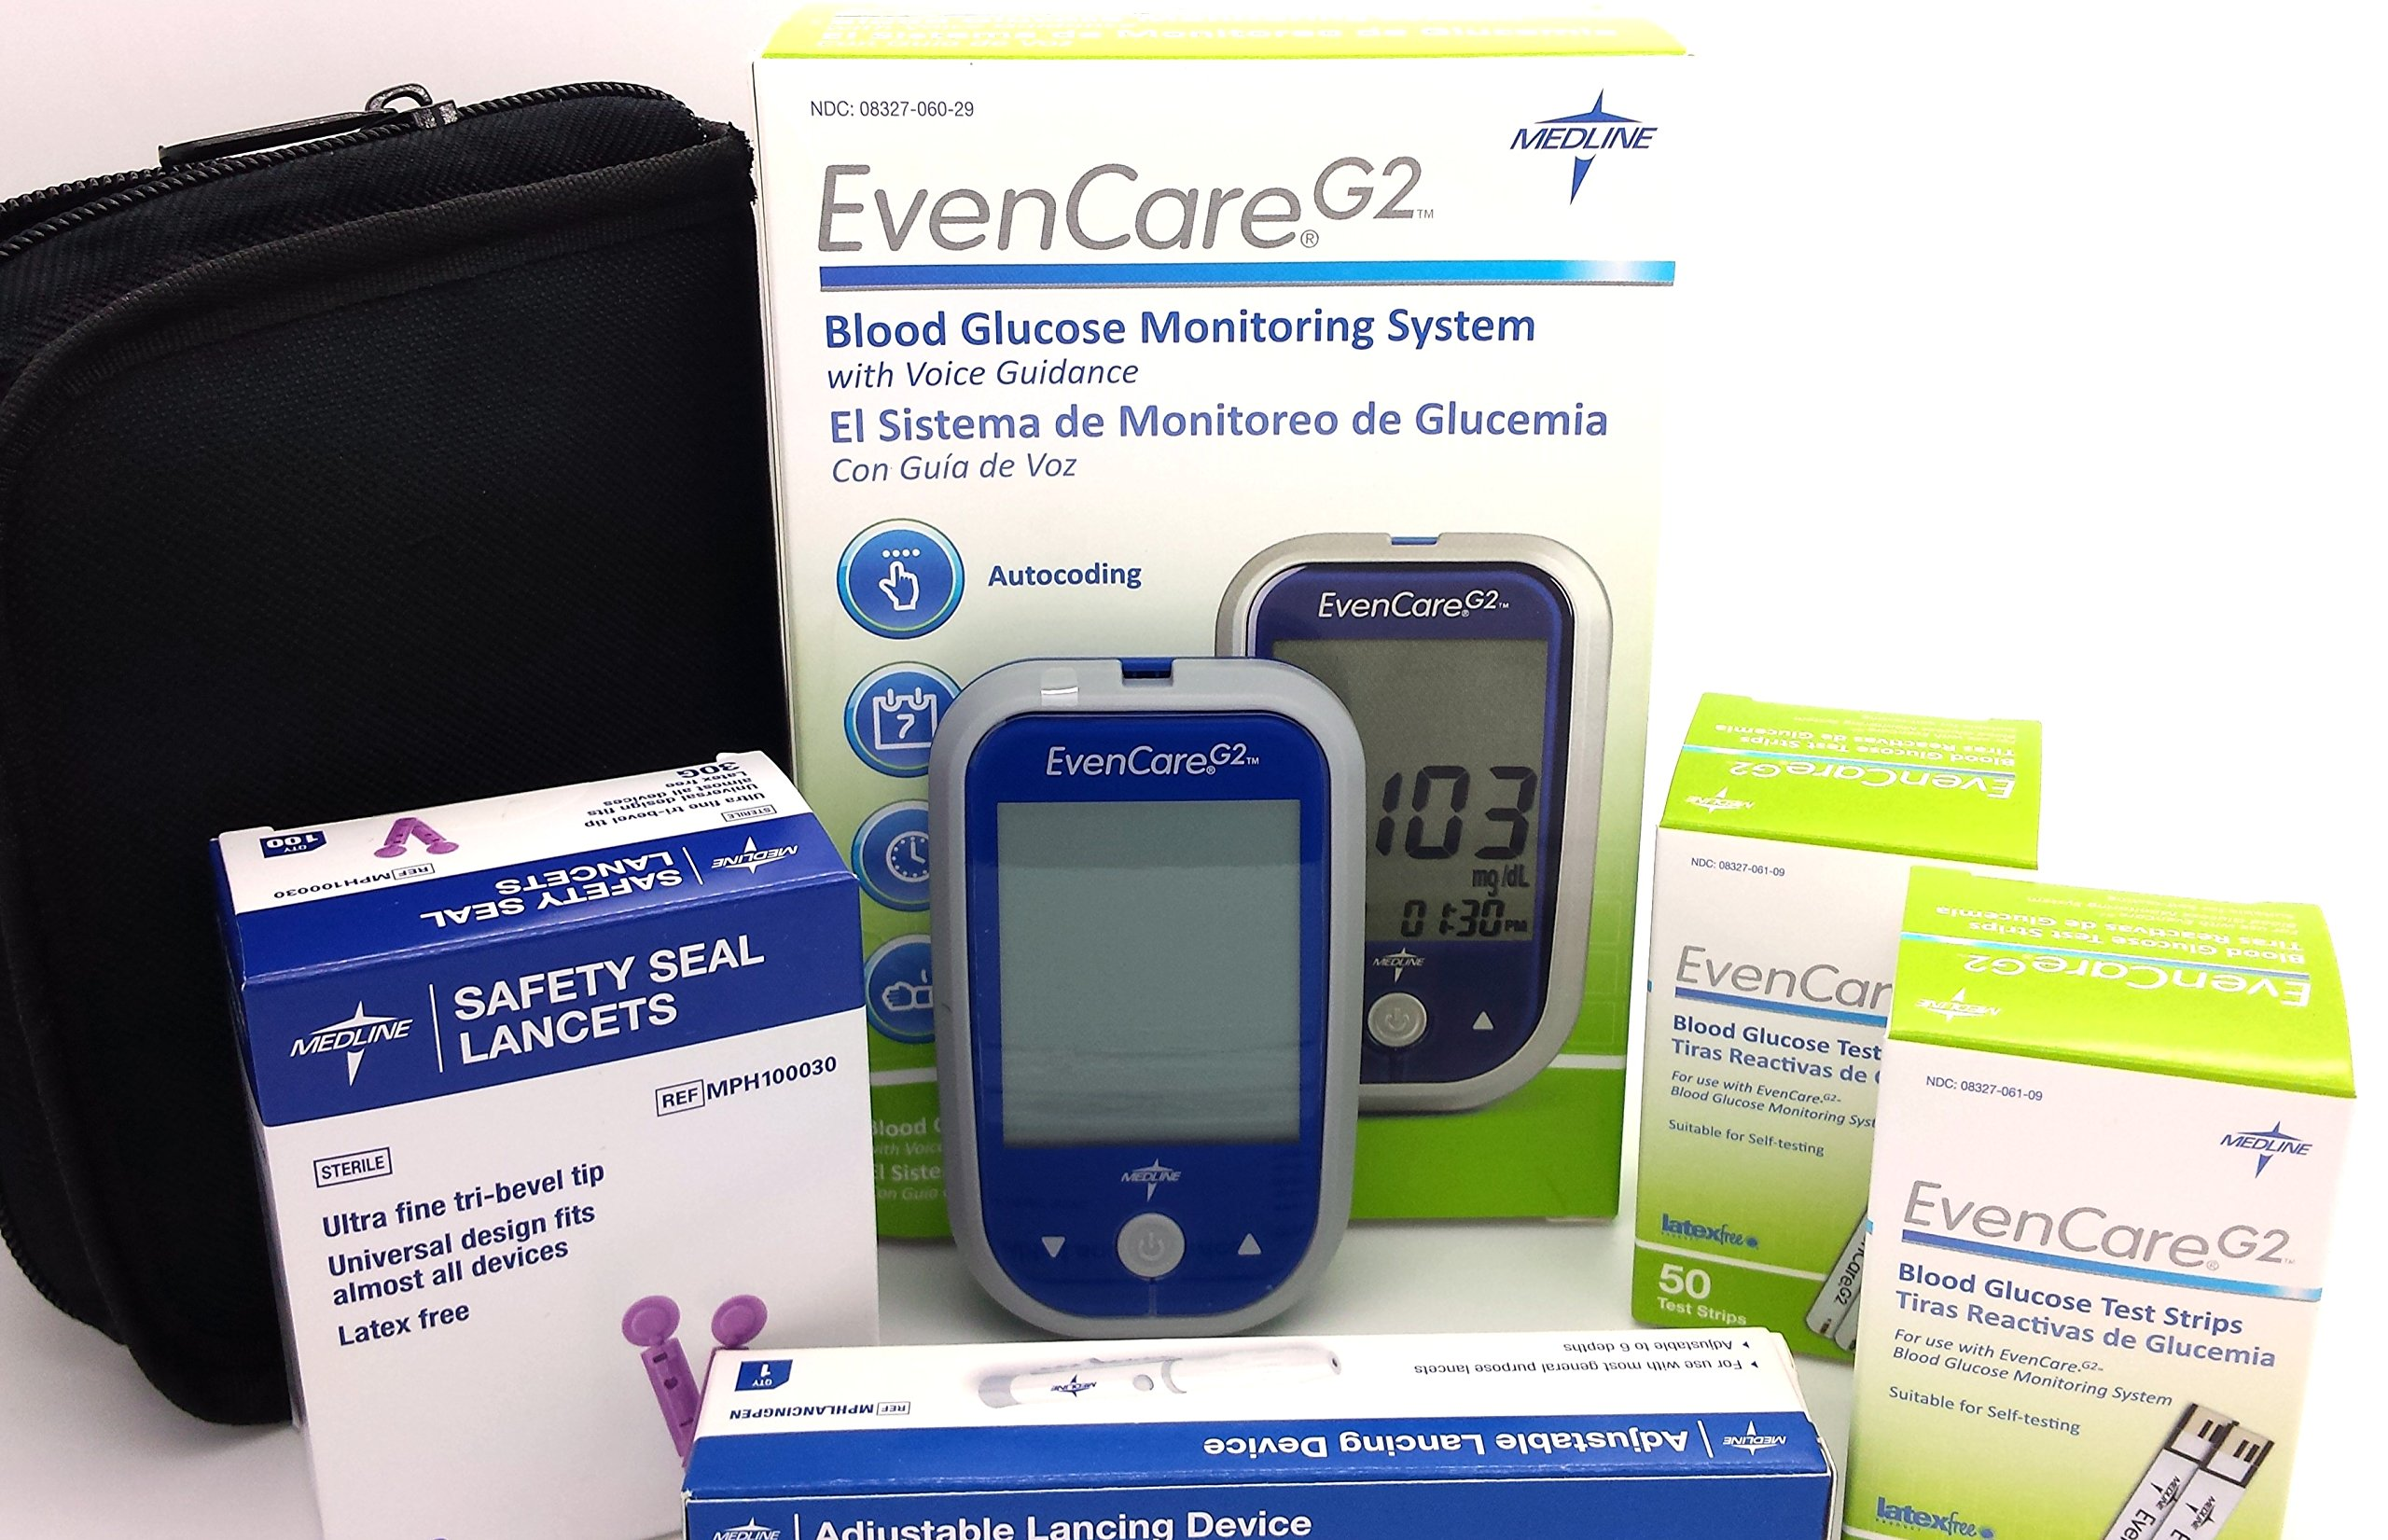 Diabetes Testing Kit (EvanCare G2 Blood Glucose Monitoring System + 100 EvanCare G2 Test Strips + 100 Safety Seal 30g Lancets + Lancing Device) by EvanCare G2